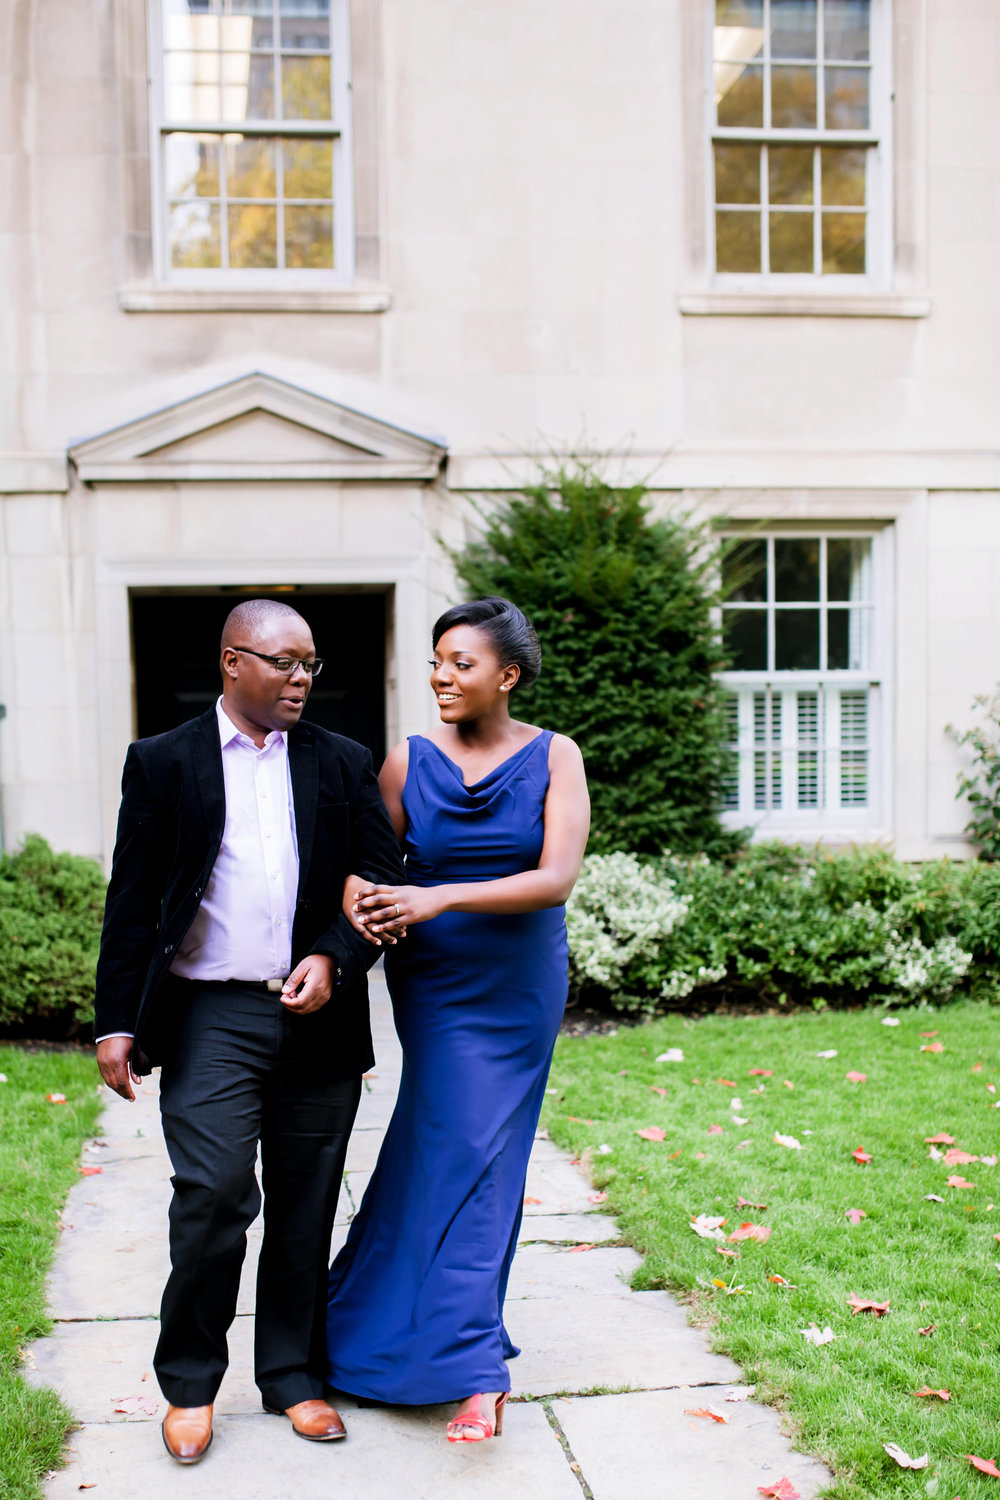 Engagement Photography Toronto Kenyan Kenya Osgoode Hall Toronto Downtown location Photographer Elegant photo ideas Ontario Canada African Black Couple